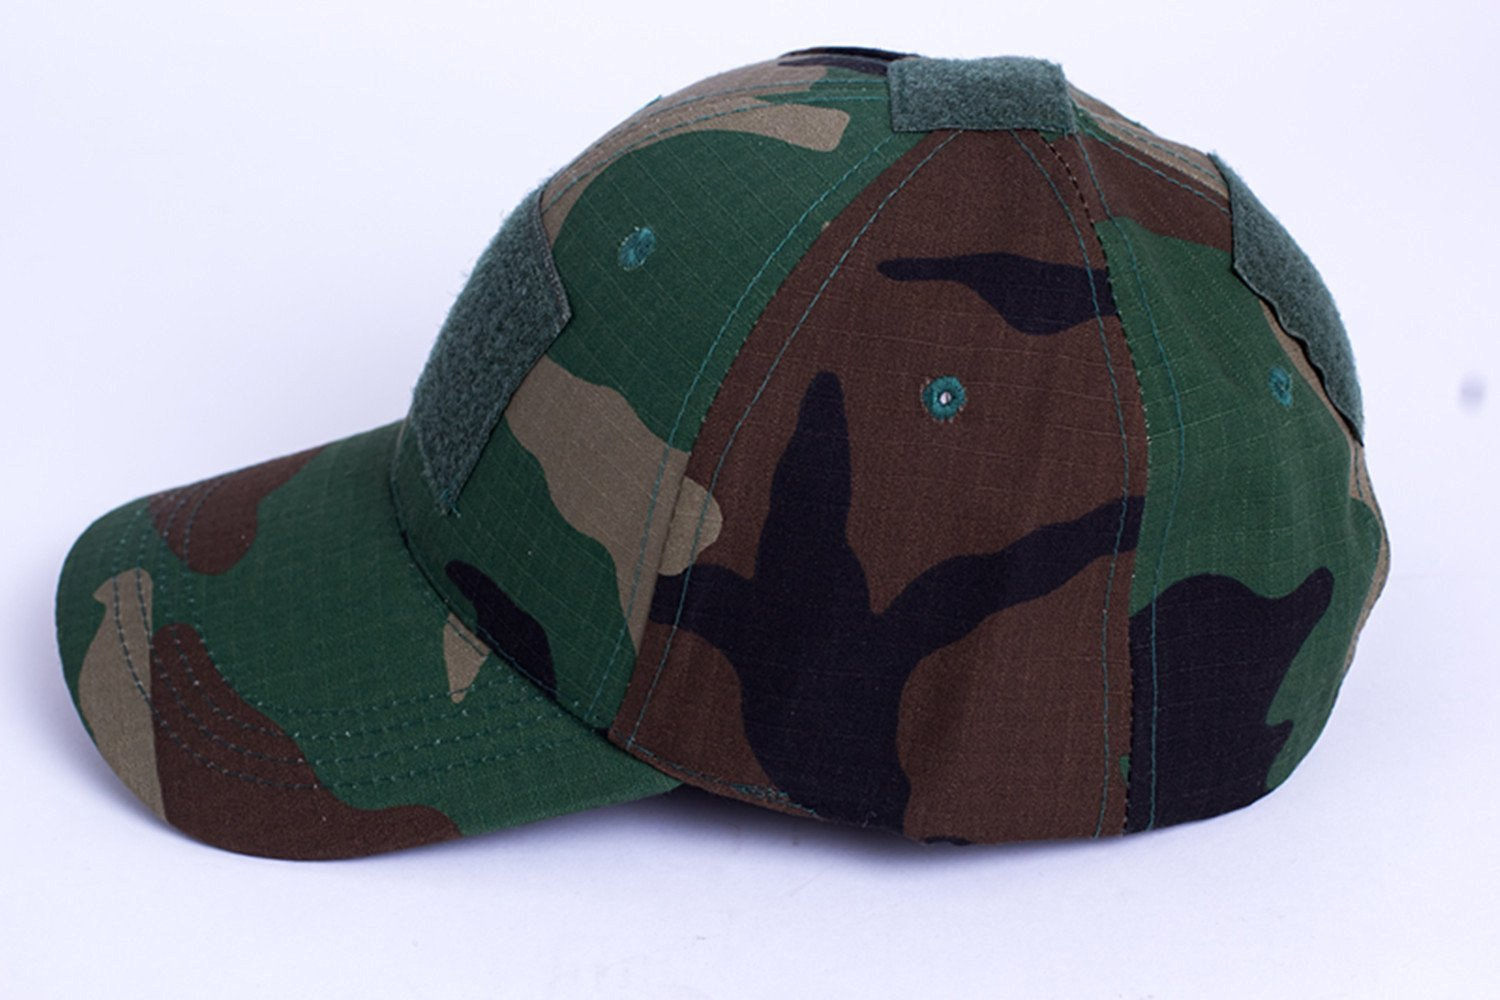 fe23e2b0c86 Get Quotations · Noga Camouflage Velcro Hat Simplicity Outdoor Sun Hat Army  Hat Woodland Camo Outdoor Tactical Cap for